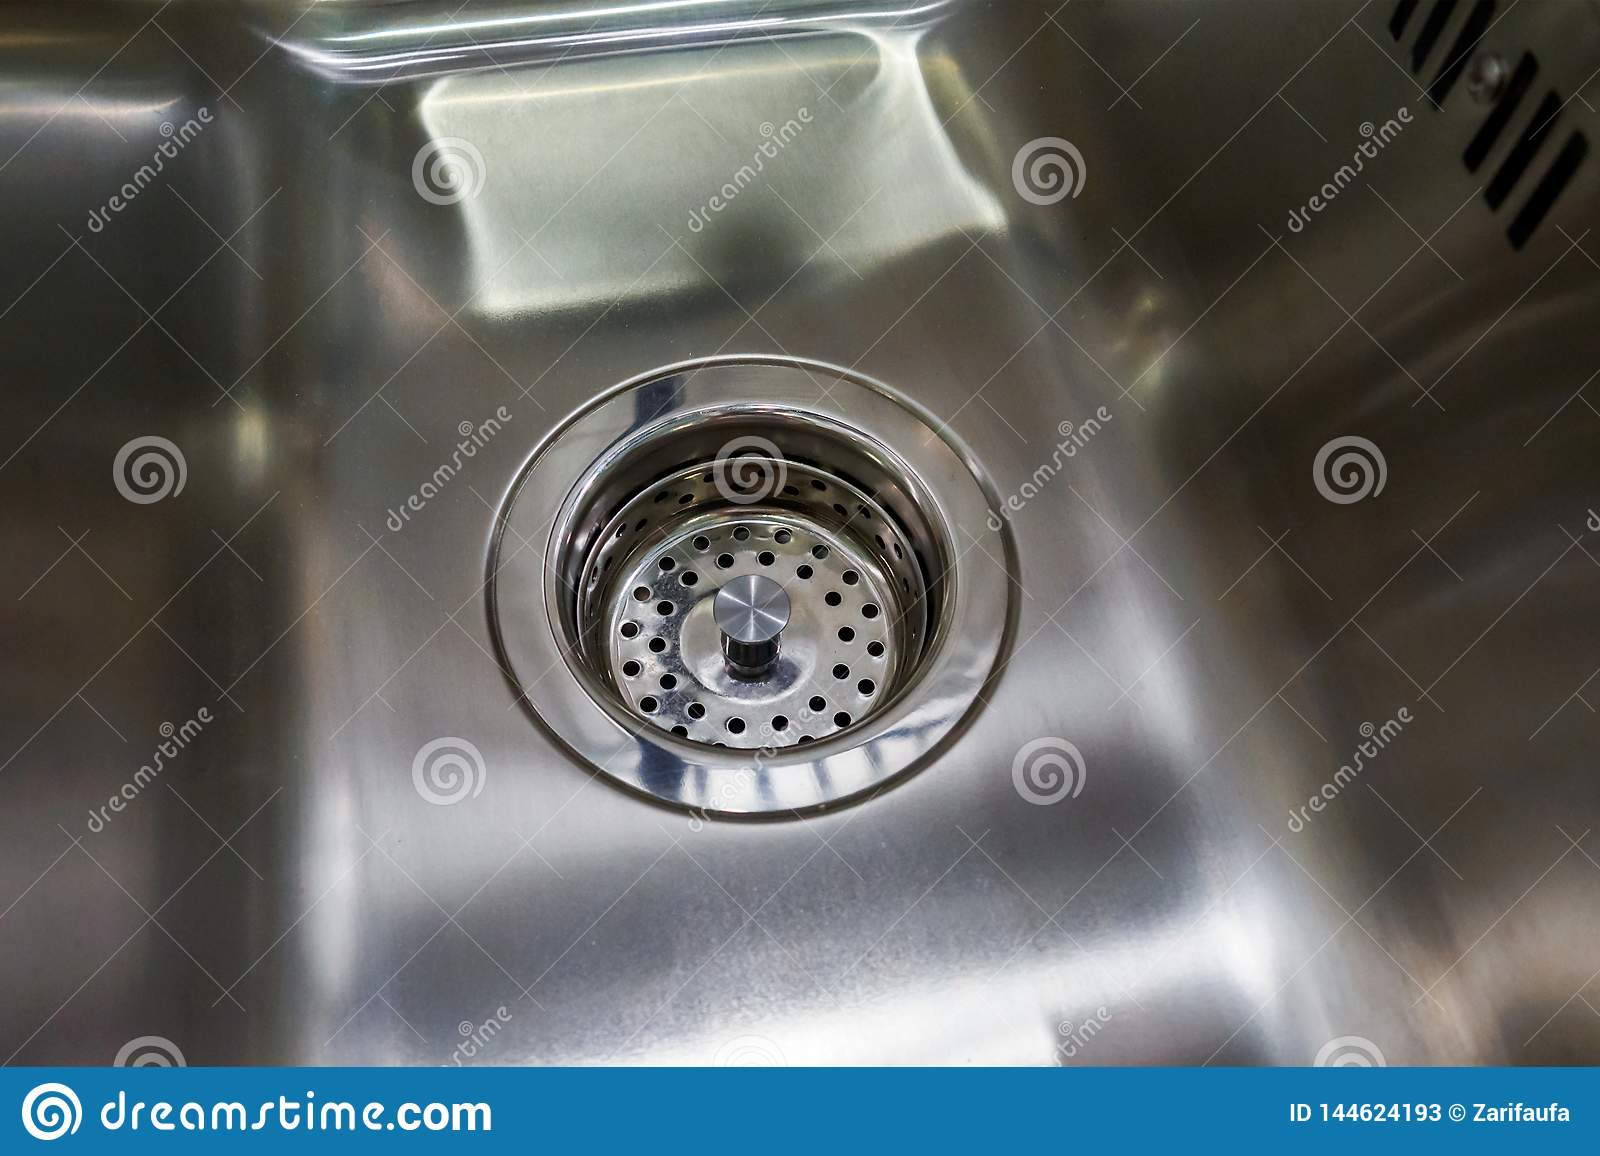 Pleasant Empty And Dry Metal Kitchen Sink With Grill On Drain Stock Best Image Libraries Thycampuscom